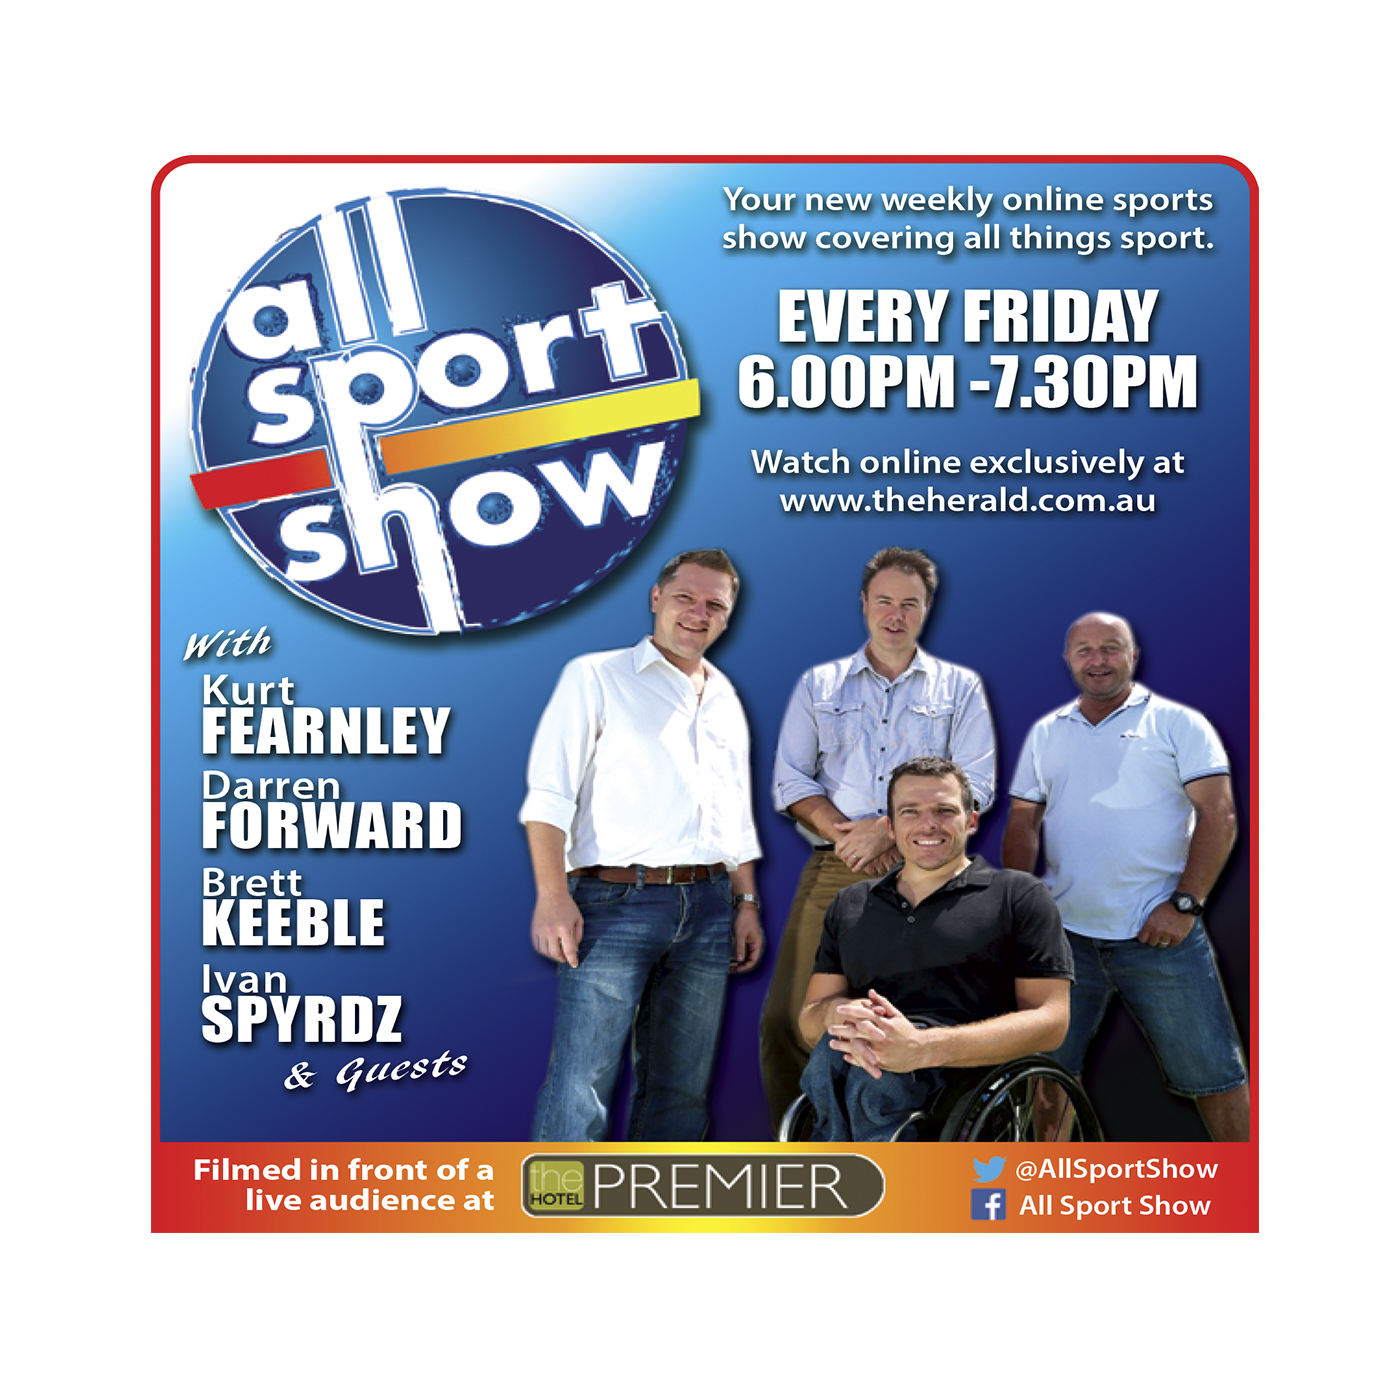 All Sport Show